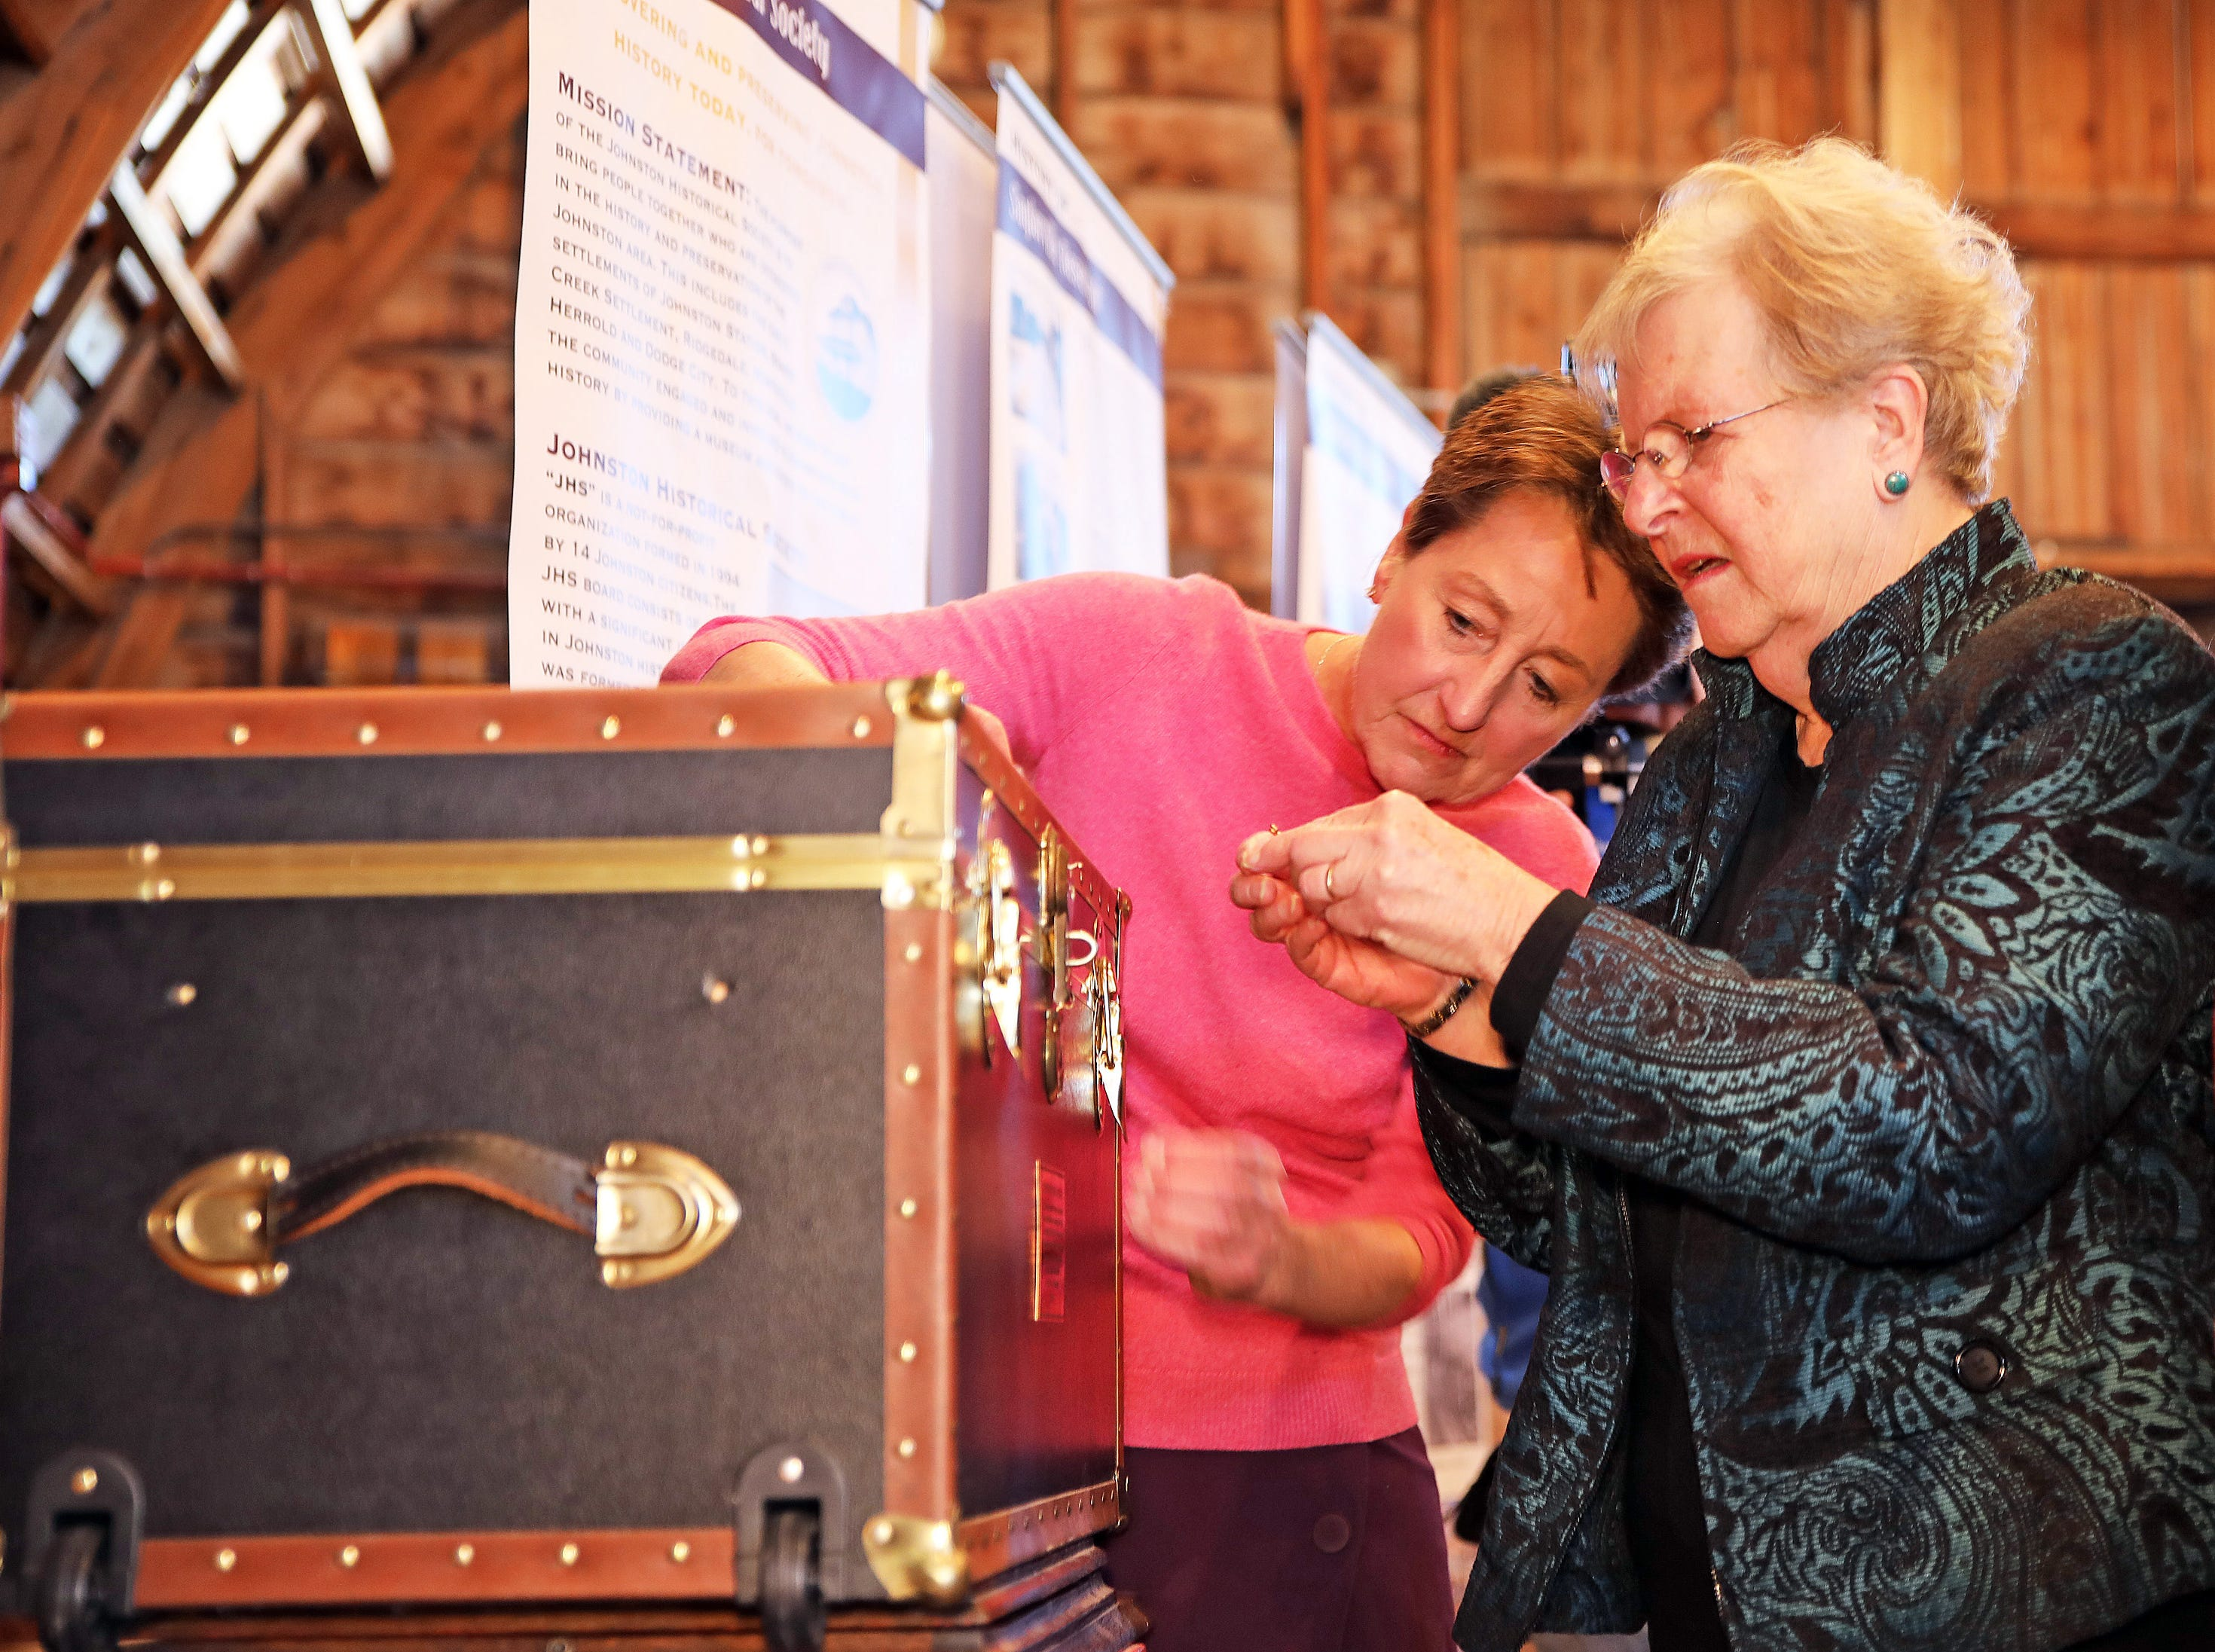 Johnston Mayor Paula Dierenfeld and past President of the Johnston Historical Society Mary Jane Paez work to unlock the treasure chest during the opening of the 25-year old time capsule from 1994 as the city of Johnston celebrates its 50th anniversary at the Simpson House and Barn Museum at 6161 Northglenn Drive on Sunday, March 10, 2019, in Johnston. The city was incorporated in 1969 with 2,236 residents and 50 years later, over 21,000 residents call Johnston home.